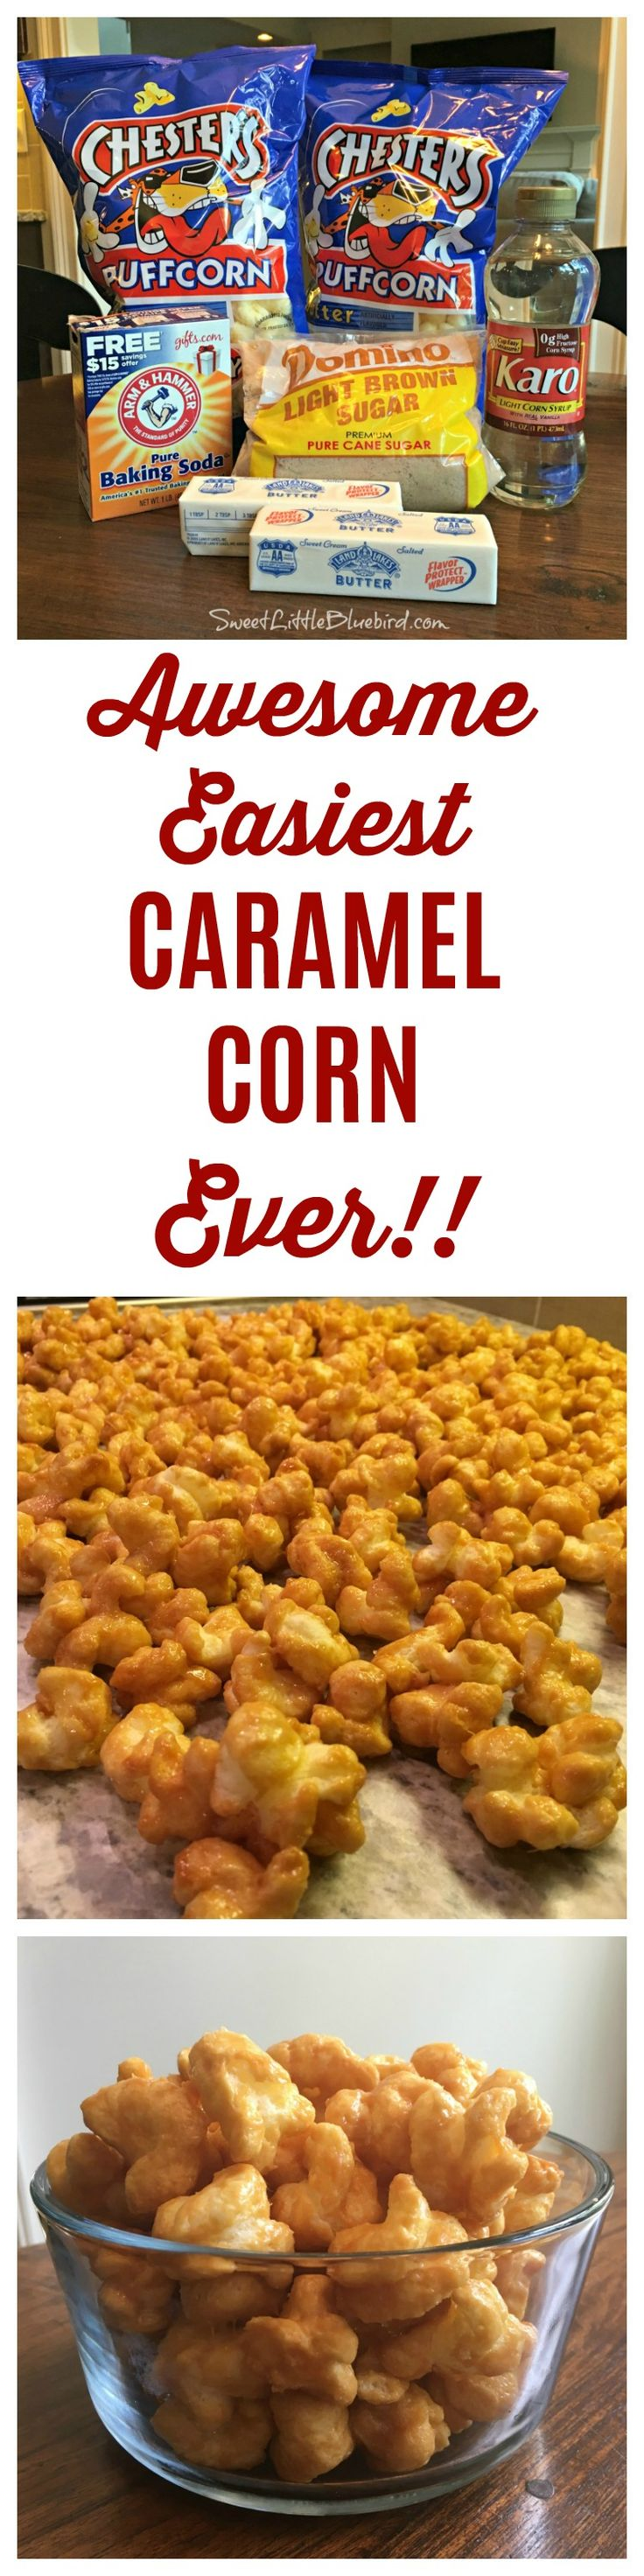 "AWESOME & EASIEST CARAMEL CORN EVER!! ""When I say this is the easiest, I'm not kidding! Less than 10 minutes to make, 45 minutes to bake, no candy thermometer and you can be eating this in less than an hour. When I say it's awesome, I'm not kidding there either...I have never met anyone who didn't love this caramel corn. It has no hulls and no seeds, so little kids and older people love it too!""  Silo Hill Farm"